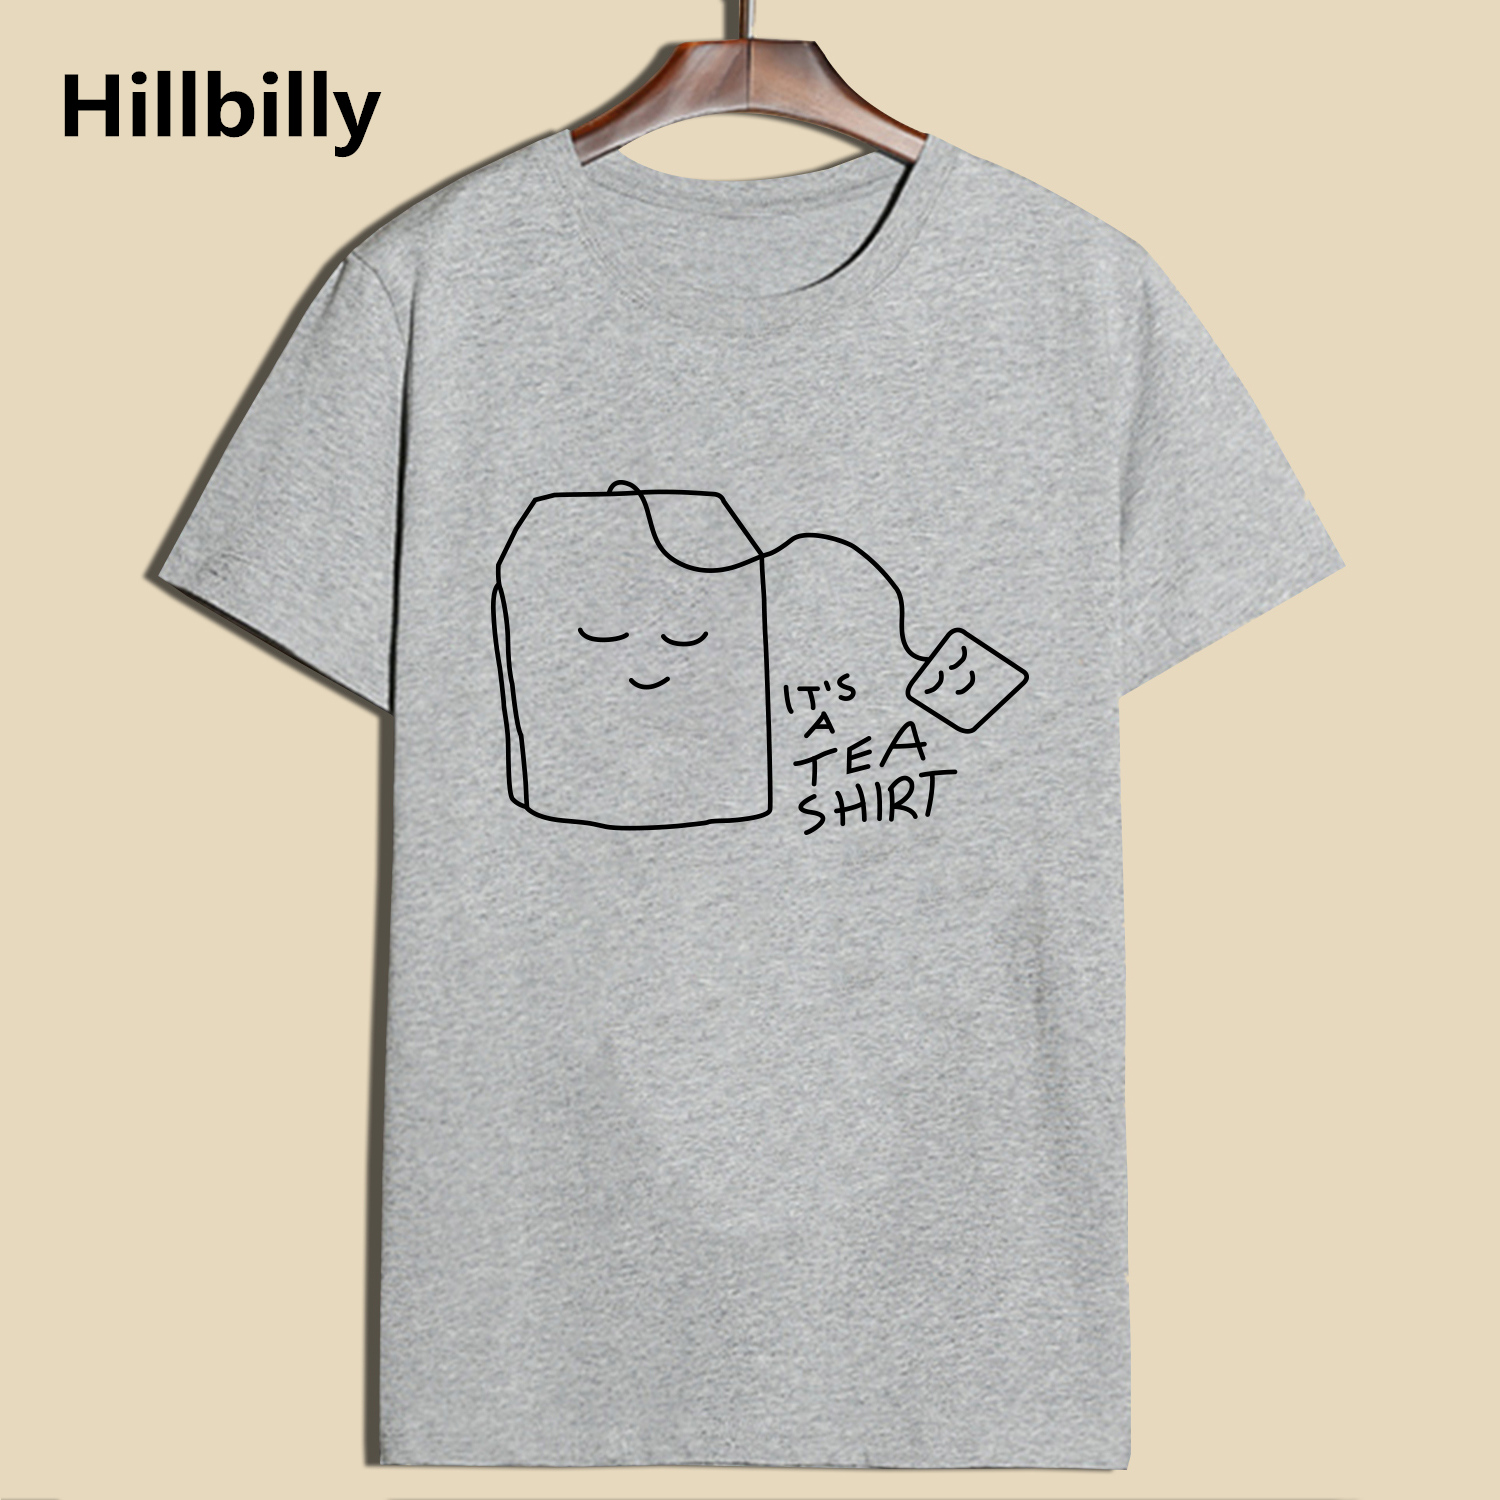 Hillbilly Men's T-shirts Funny Tea Printing T shirts 2017 Summer Cotton Short Sleeve O-Neck Male Casual Tees Size S-2XL